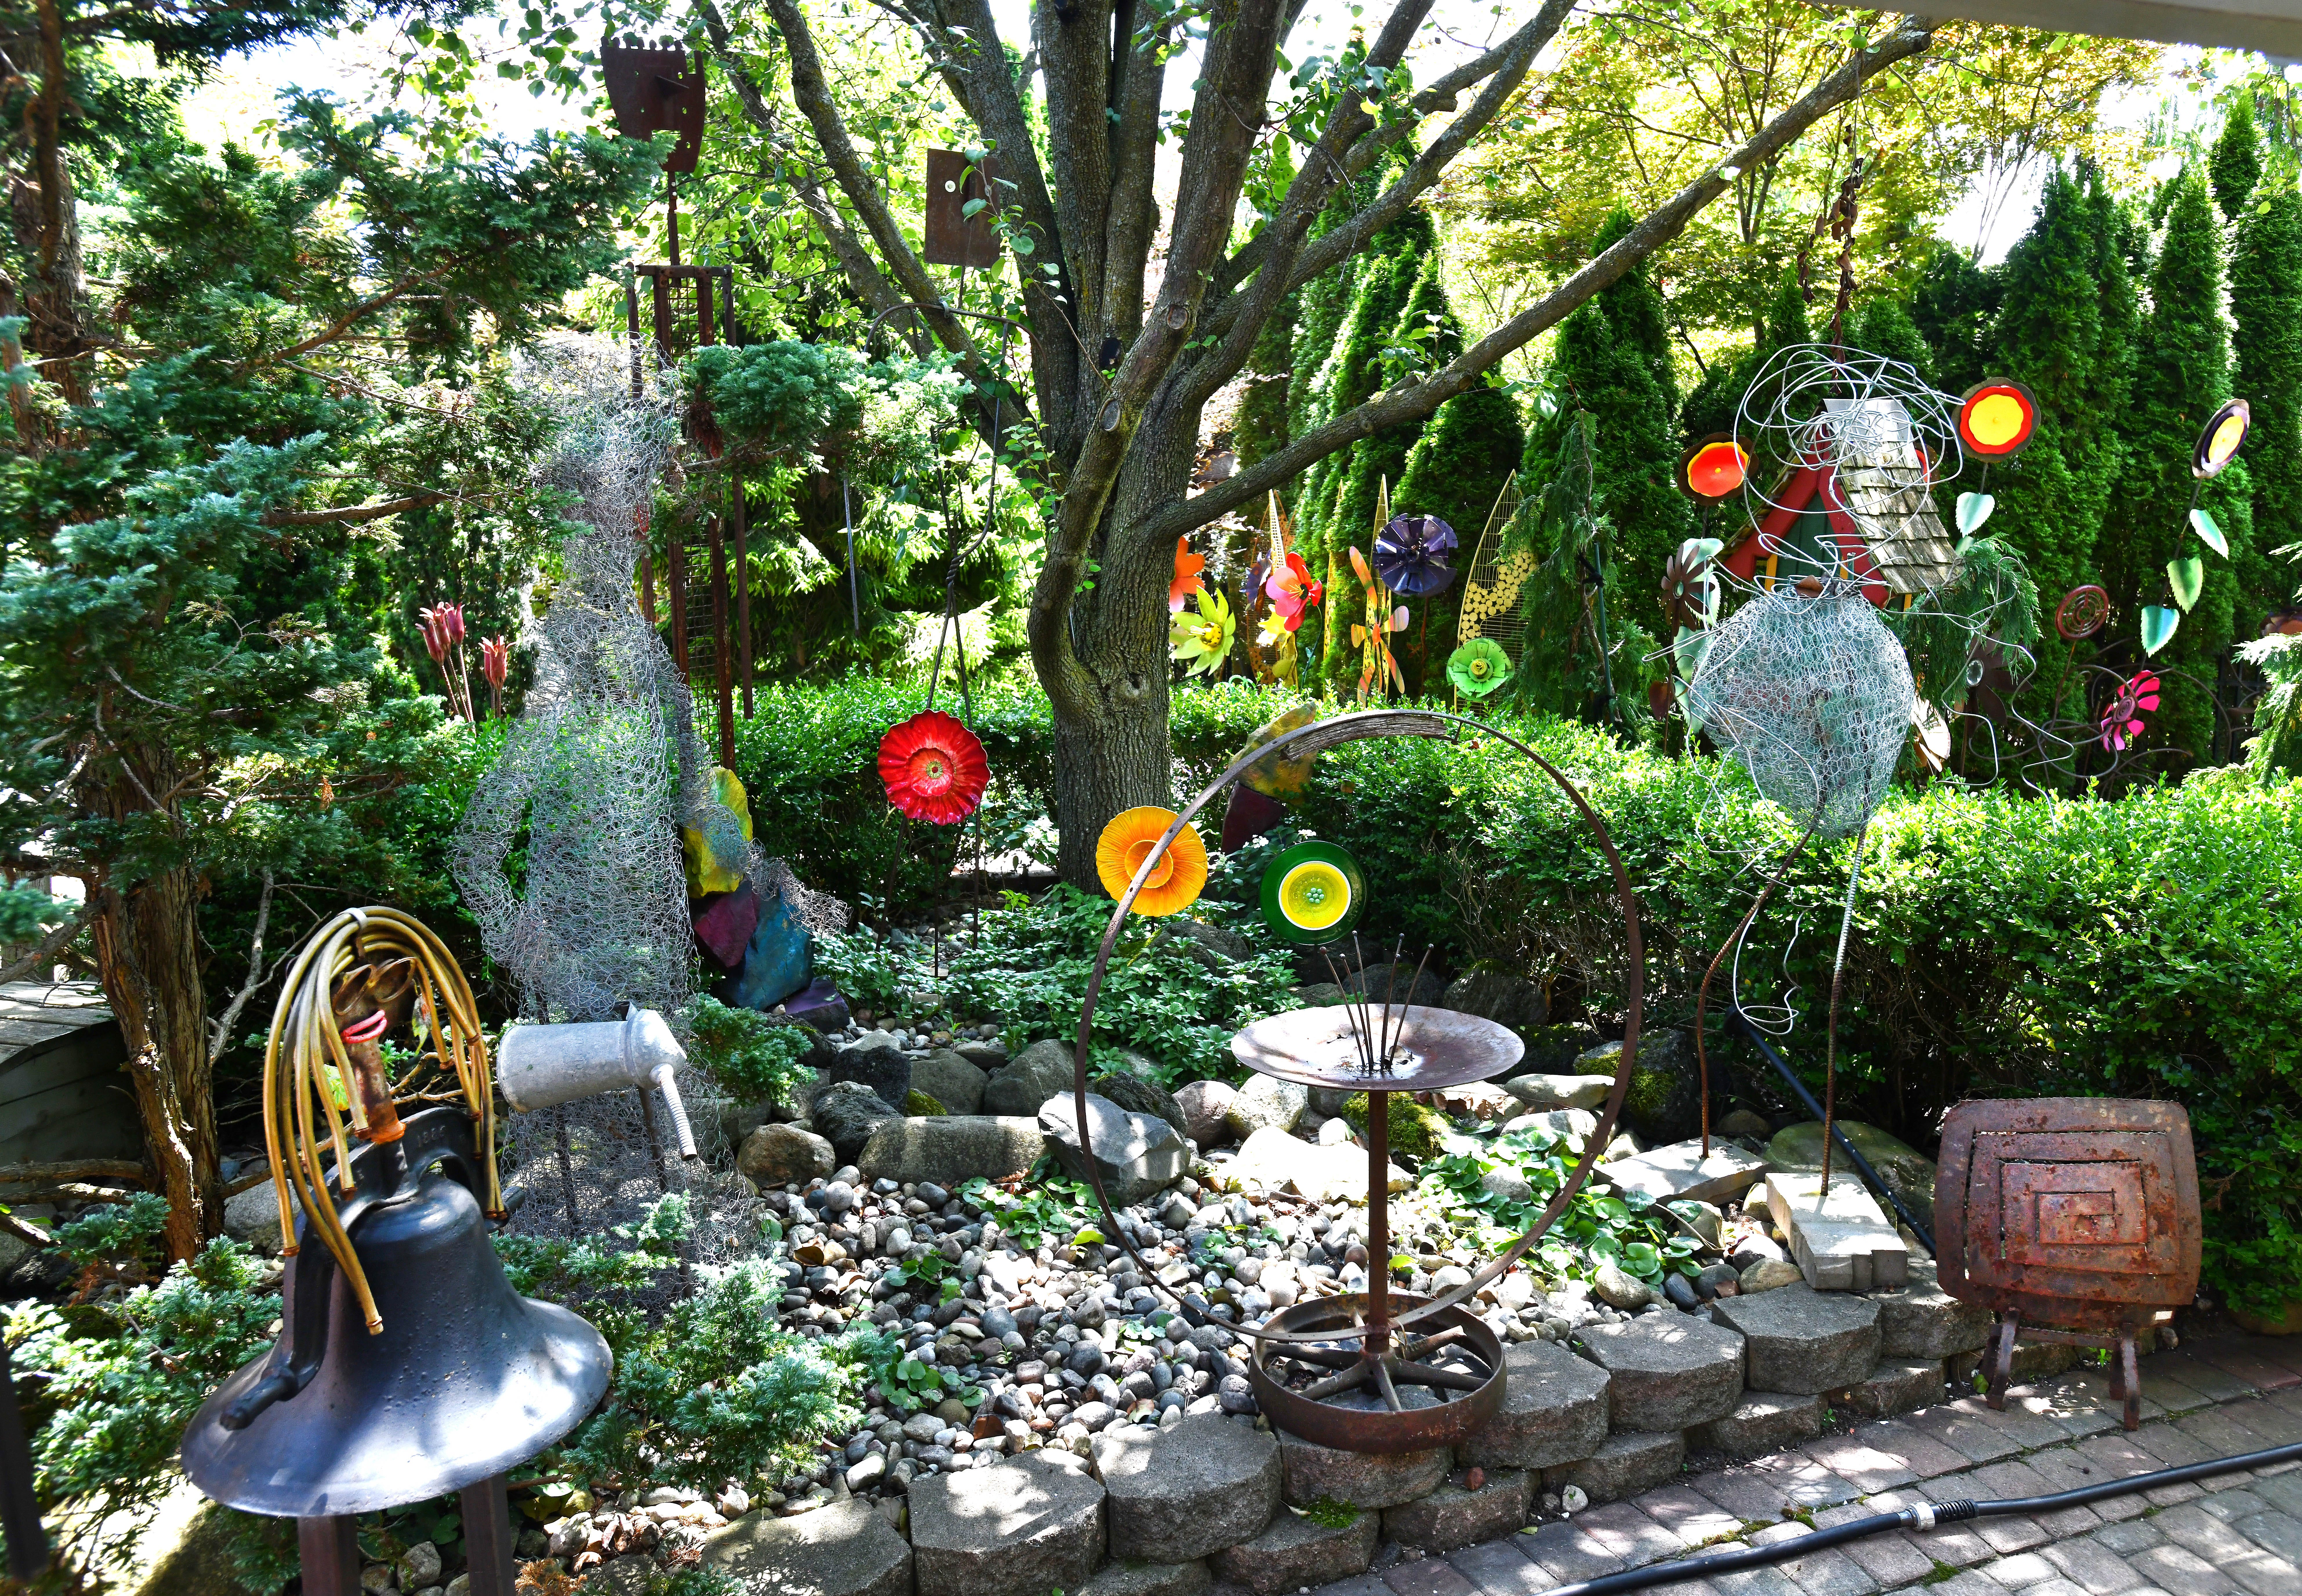 http://www detroitnews com/picture-gallery/life/home-garden/2018/08